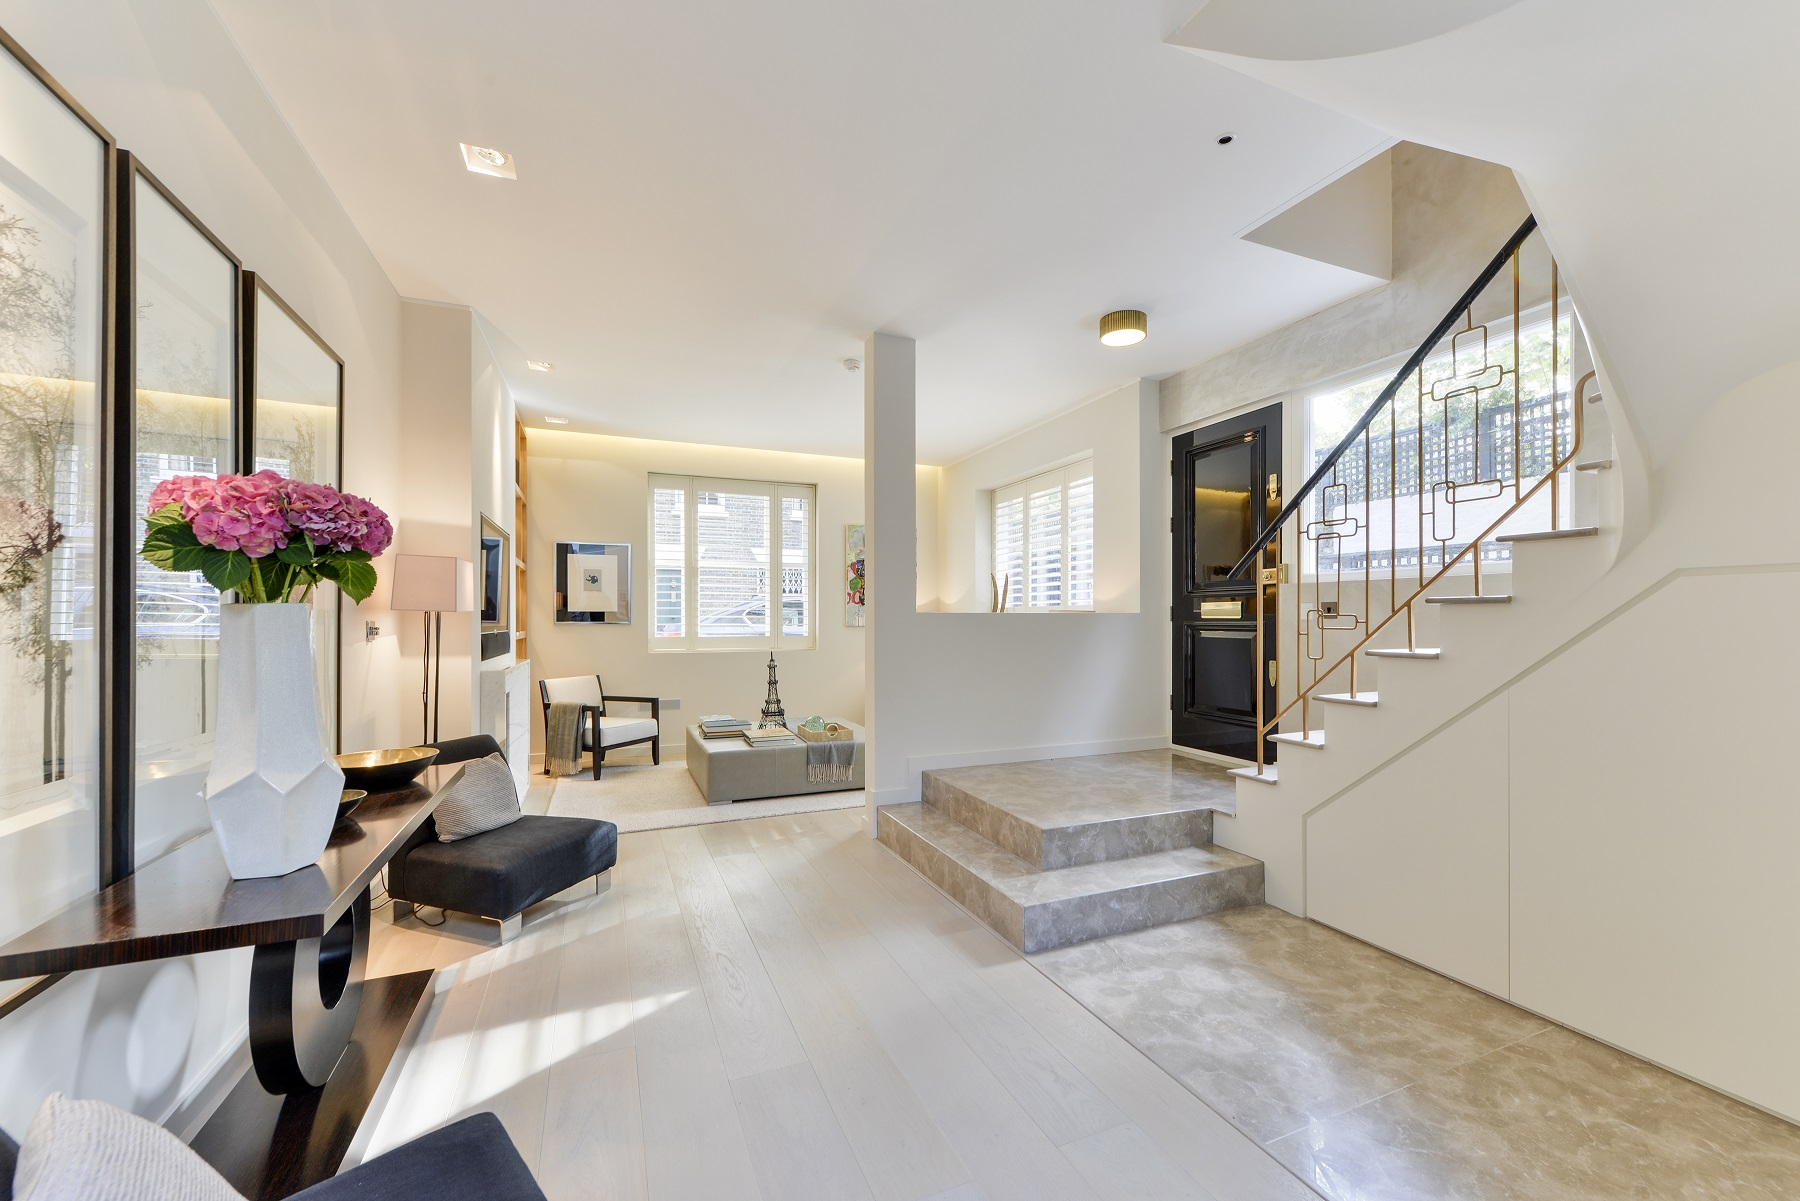 Single Family Home for Sale at Kensington Church Walk London, England, United Kingdom